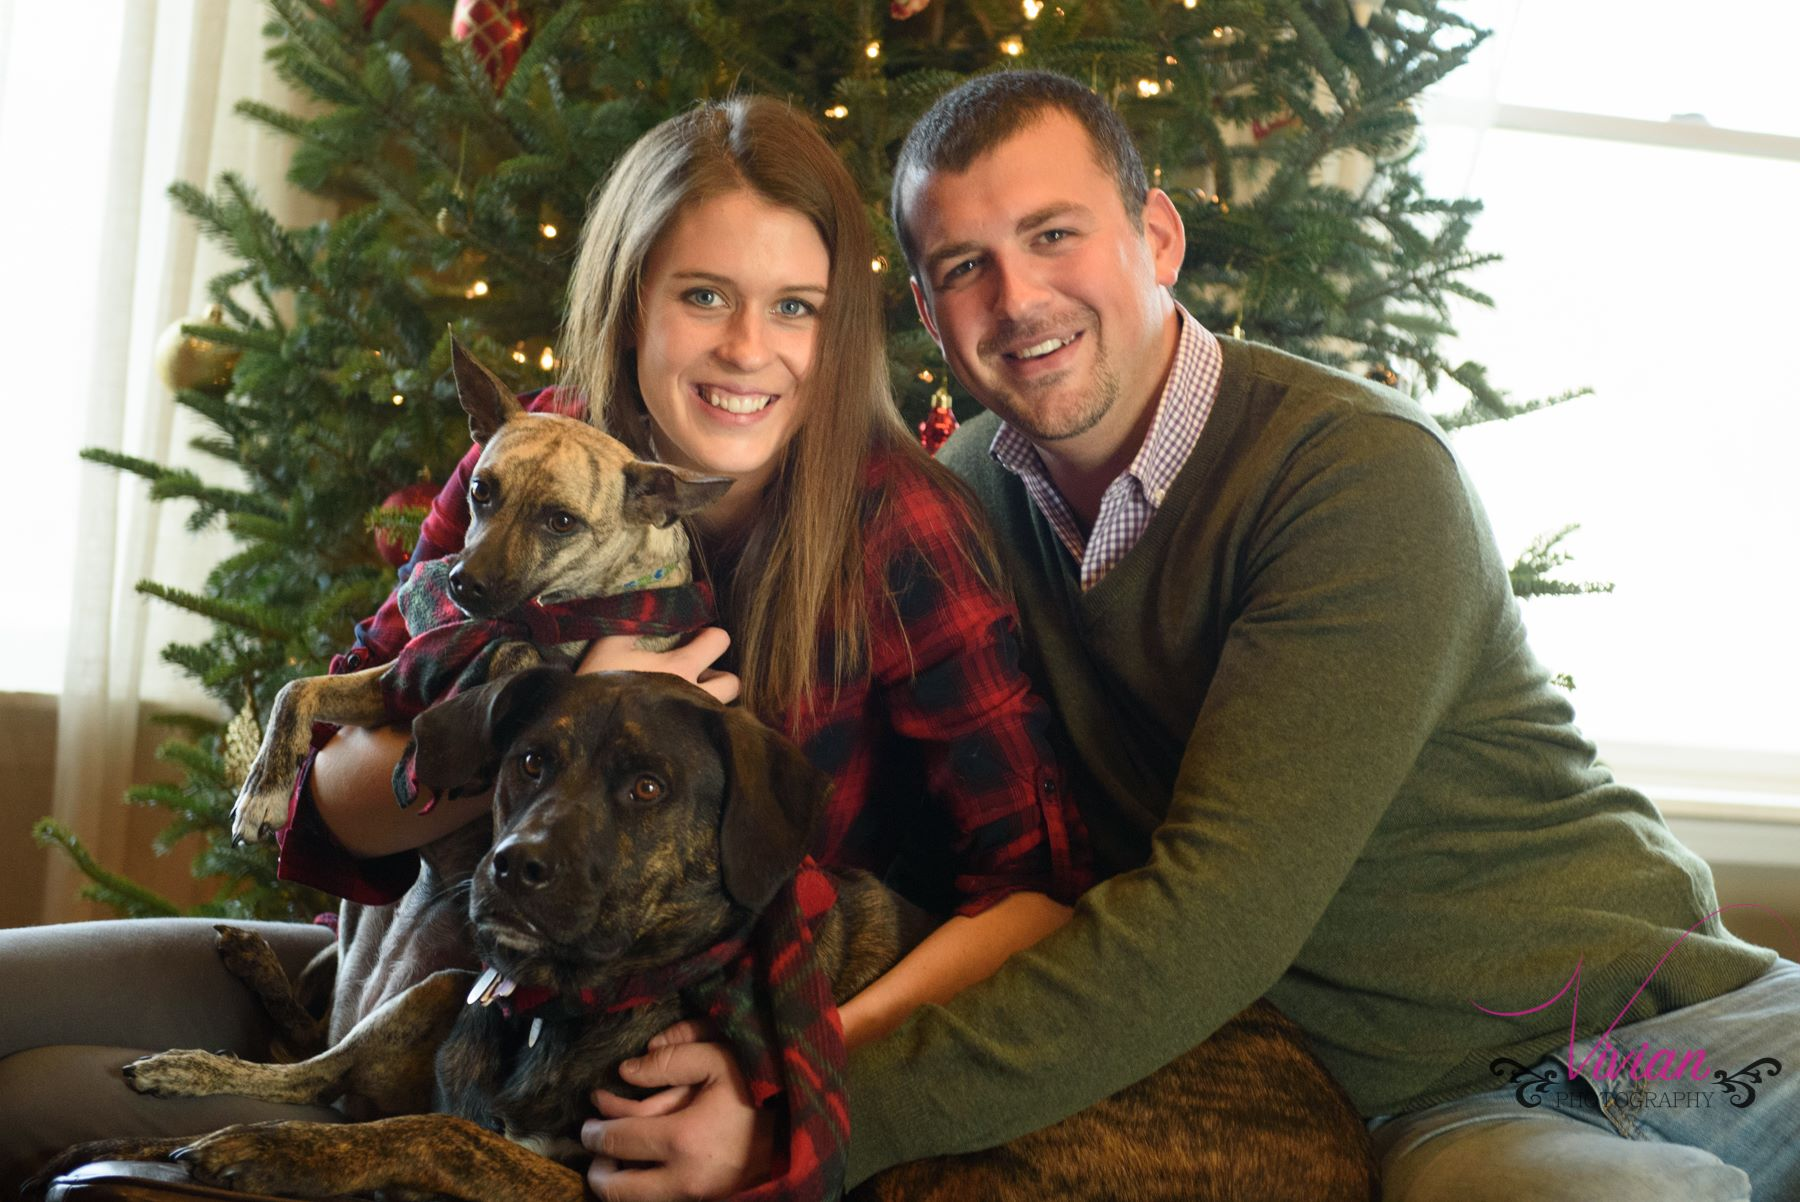 couple-holding-dogs-in-front-of-tree.jpg